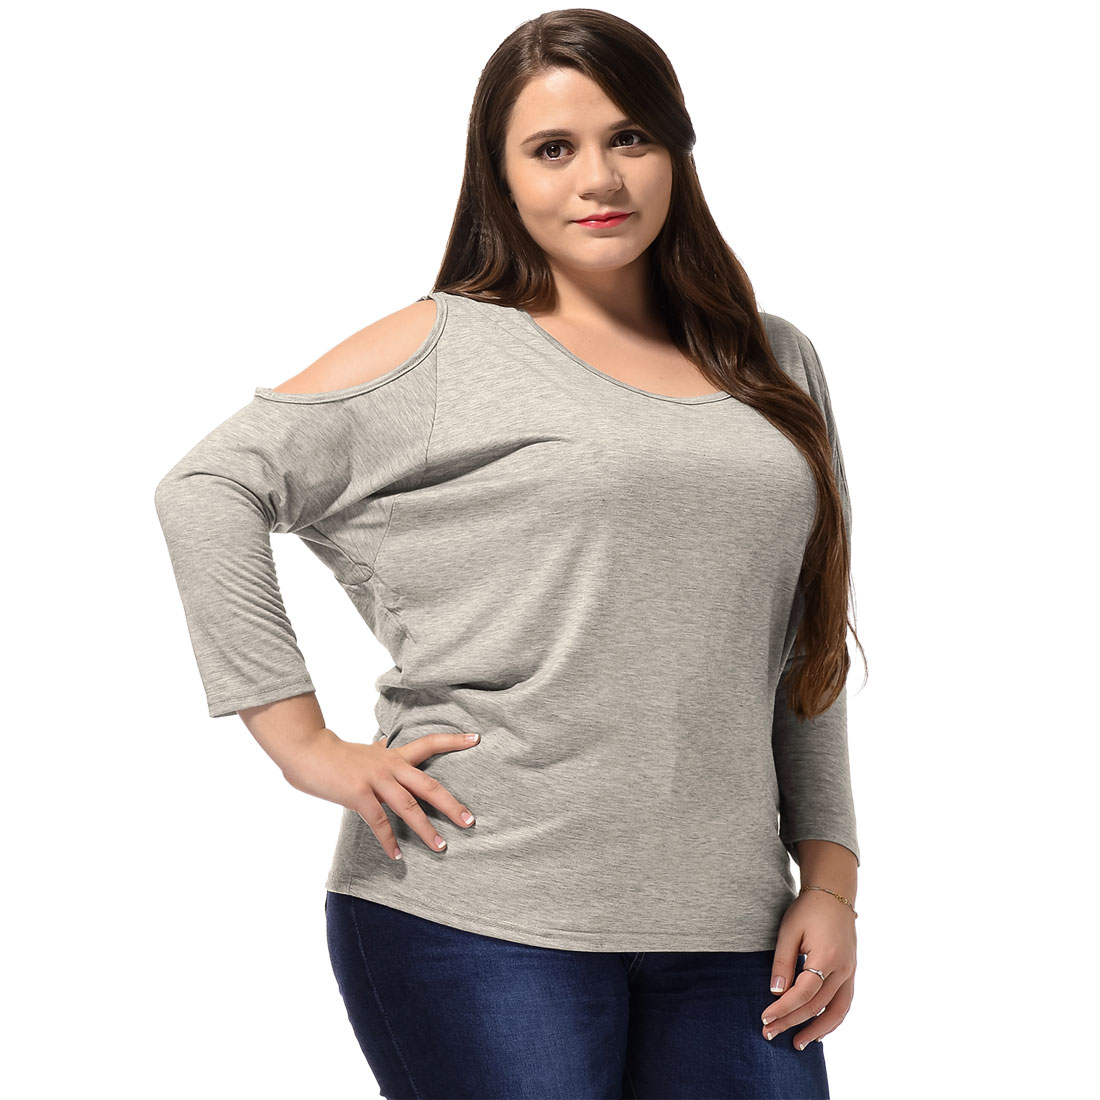 Agnes Orinda Light Gray 2X Scoop Neck Fashional Loose Top for Lady Plus Size